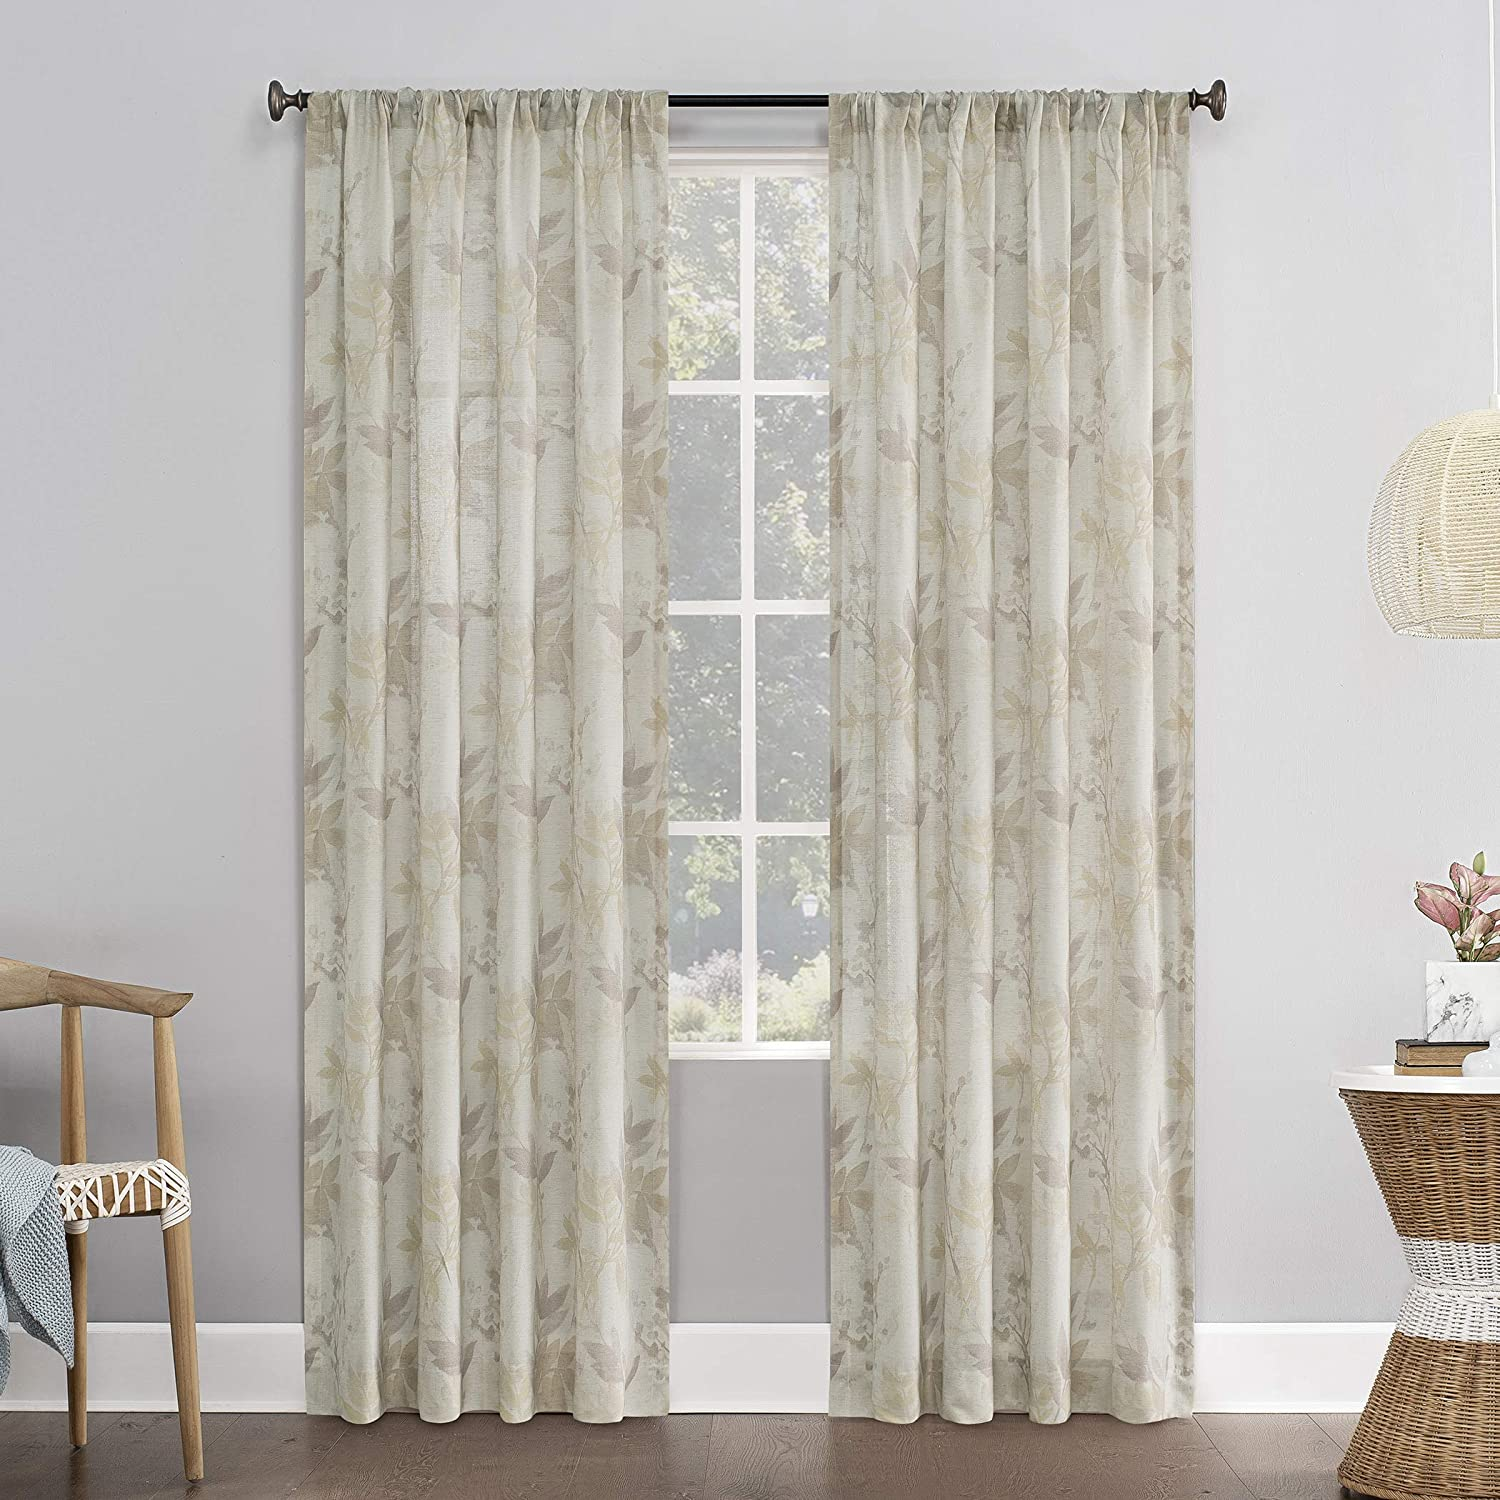 No 918 Hilary Watercolor Floral Linen Blend Semi Sheer Rod Pocket Curtain Panel 54 X 63 Blush Pink Home Kitchen